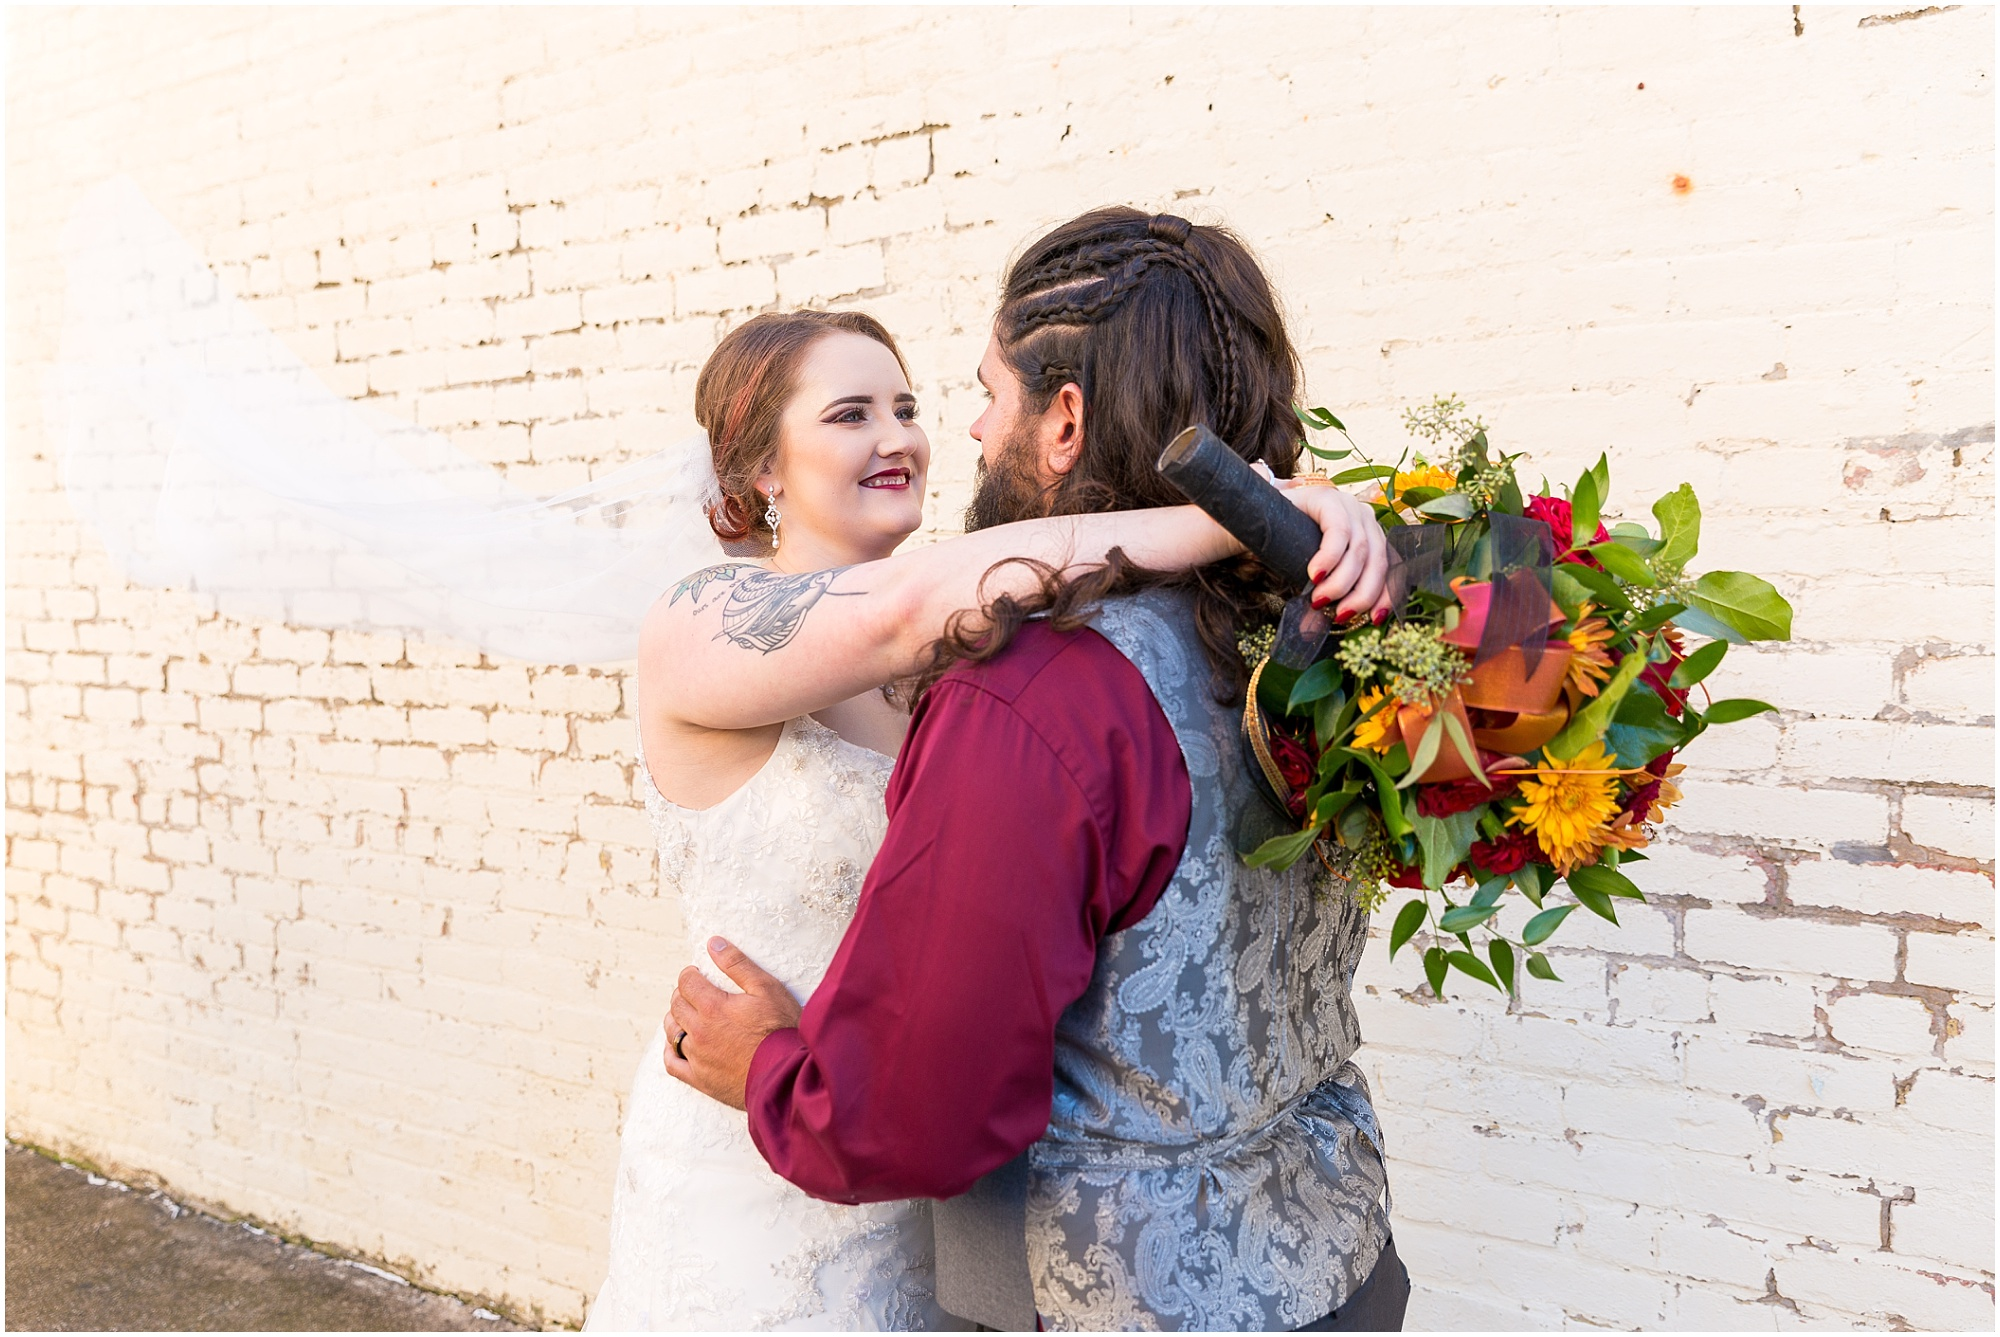 Bride smiles at groom outside wedding reception - Jason & Melaina Photography - http://jasonandmelaina.com